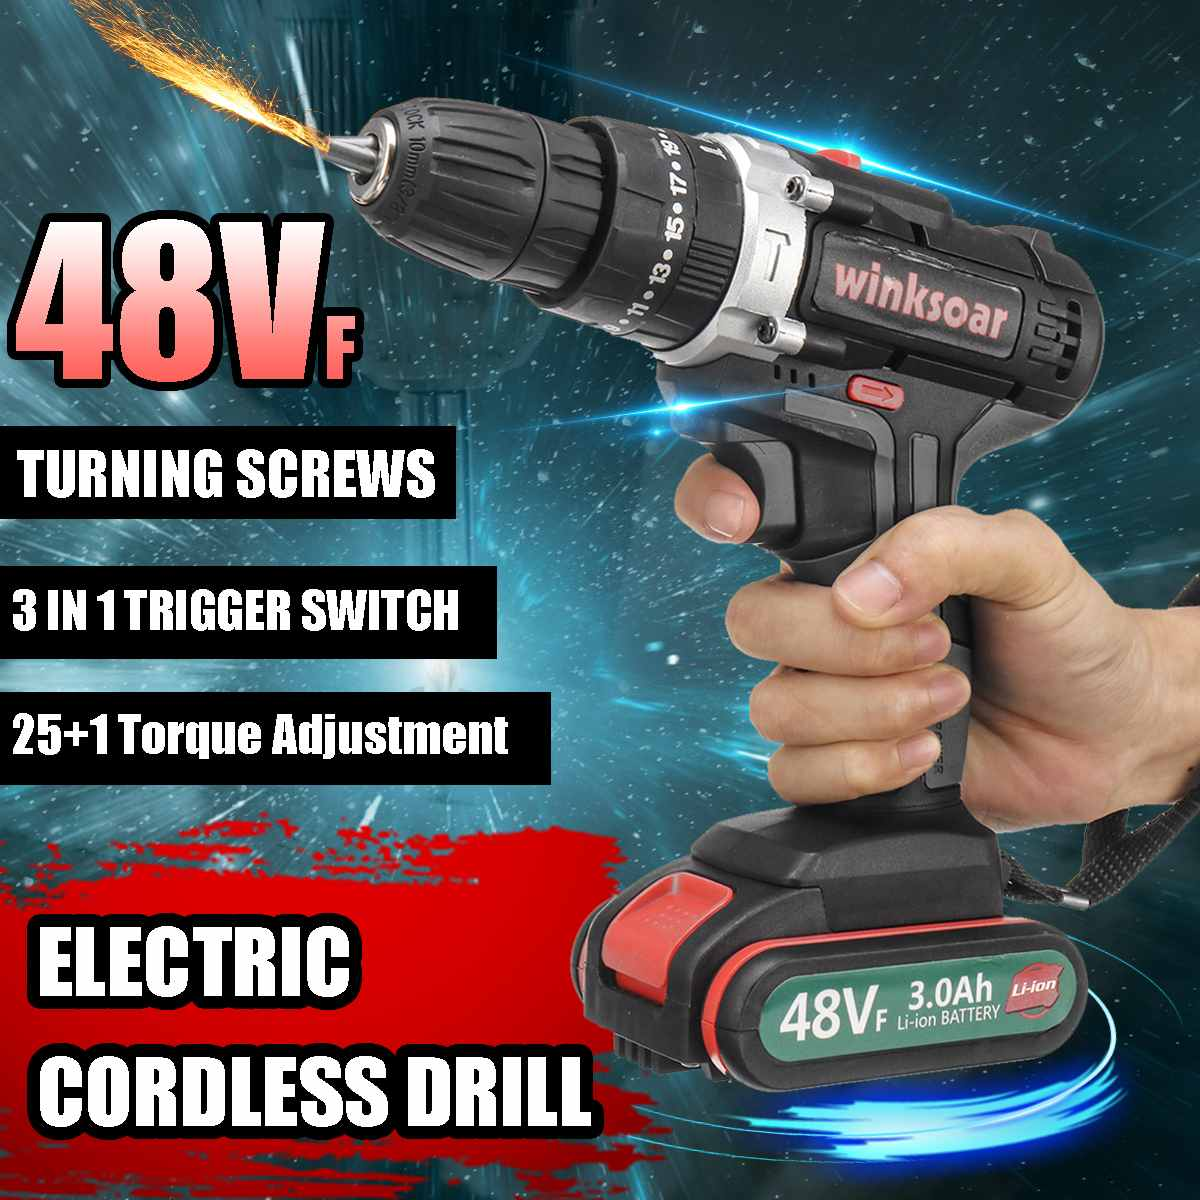 48VF 2-speed Cordless Electric Screwdriver Impact Drill 25+1 Torque Rechargeable 2xLI-ION Battery Electric Drill Power Tools